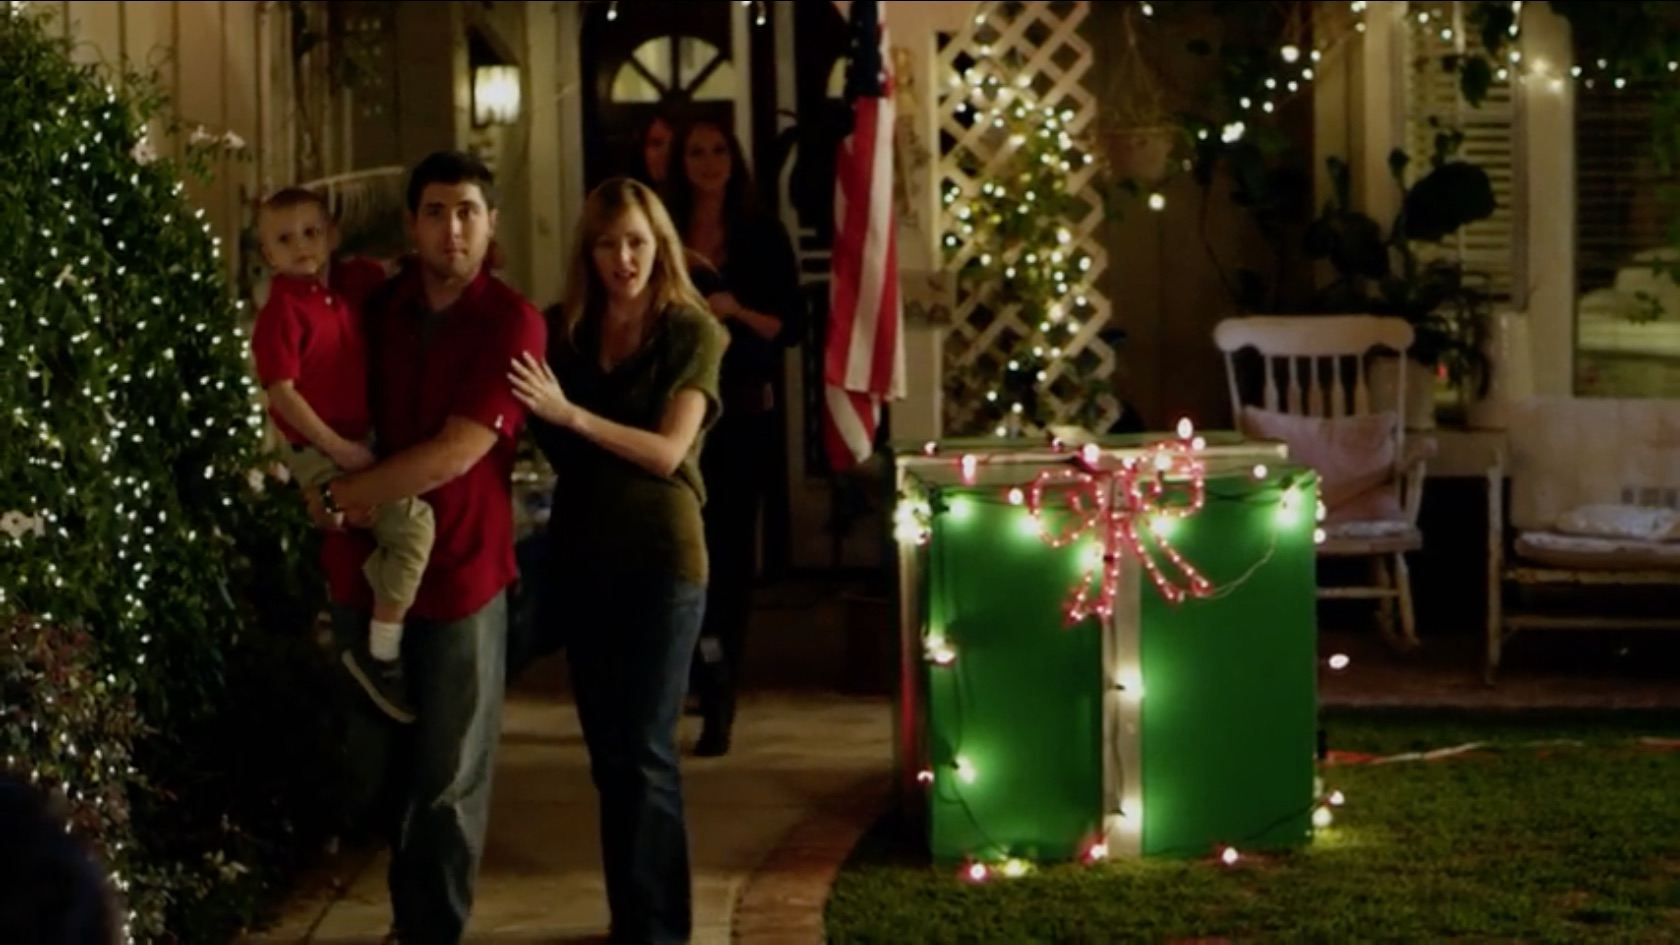 A still image of The Heart of Christmas.